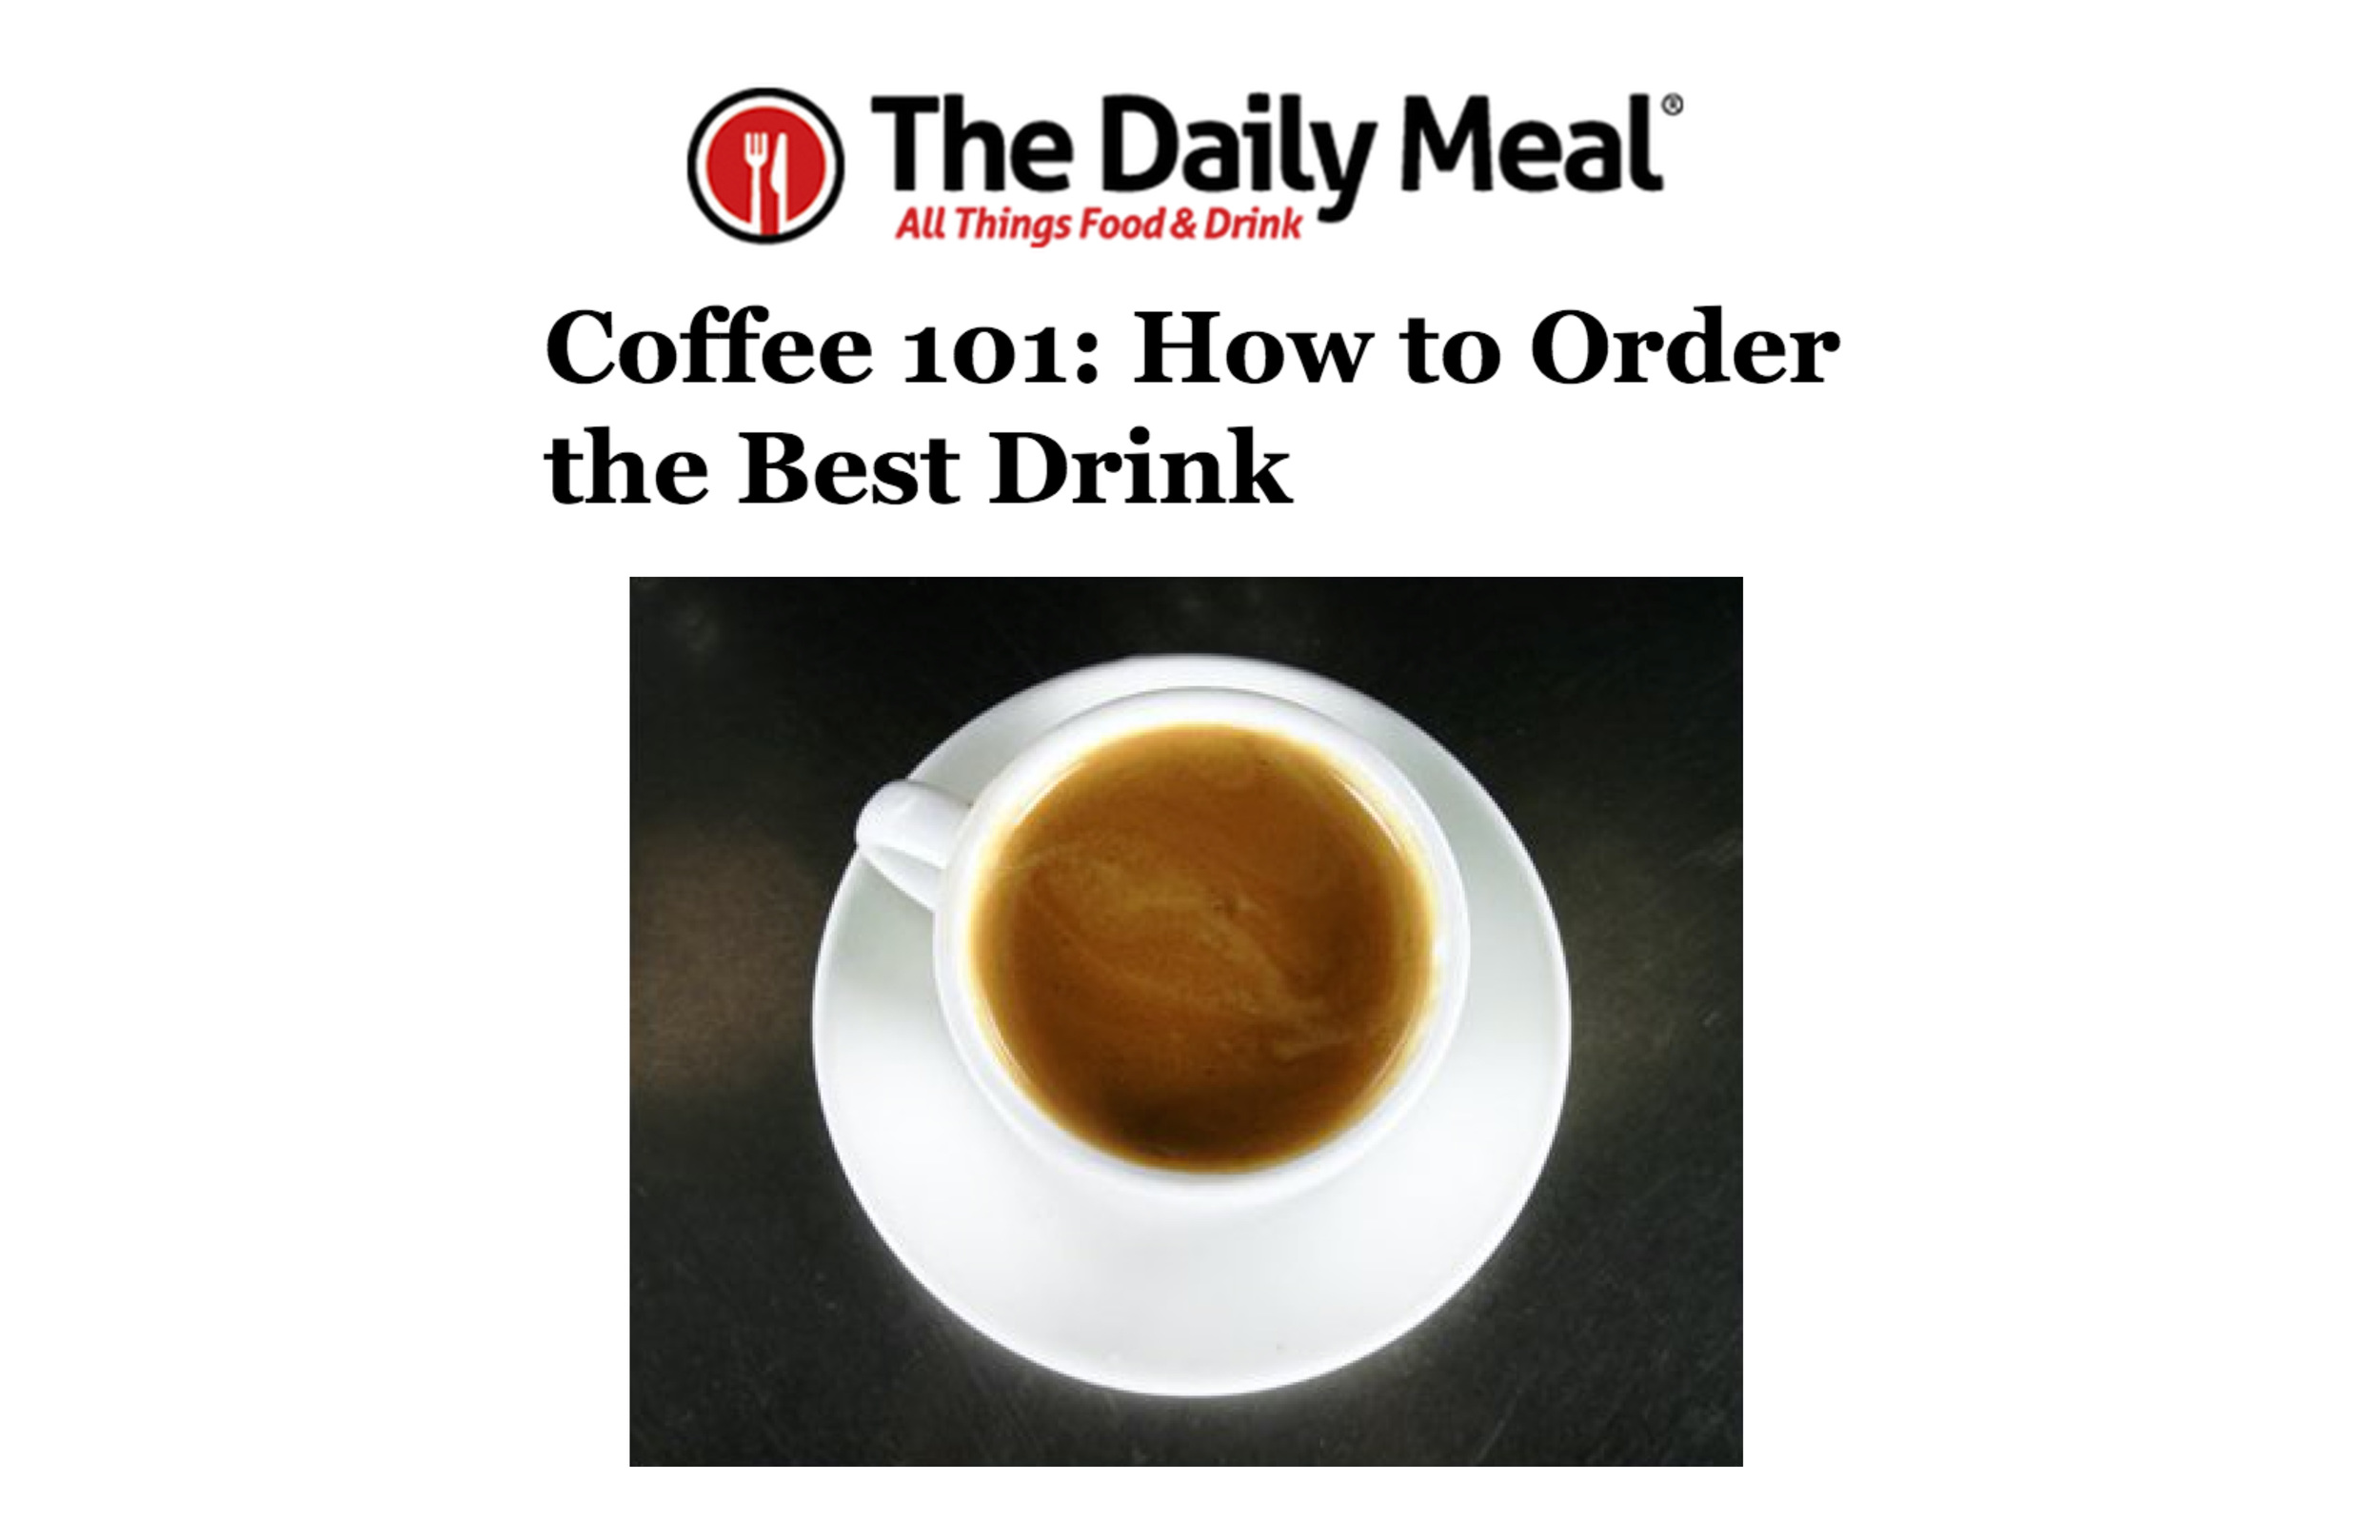 THE DAILY MEAL AUGUST 2012